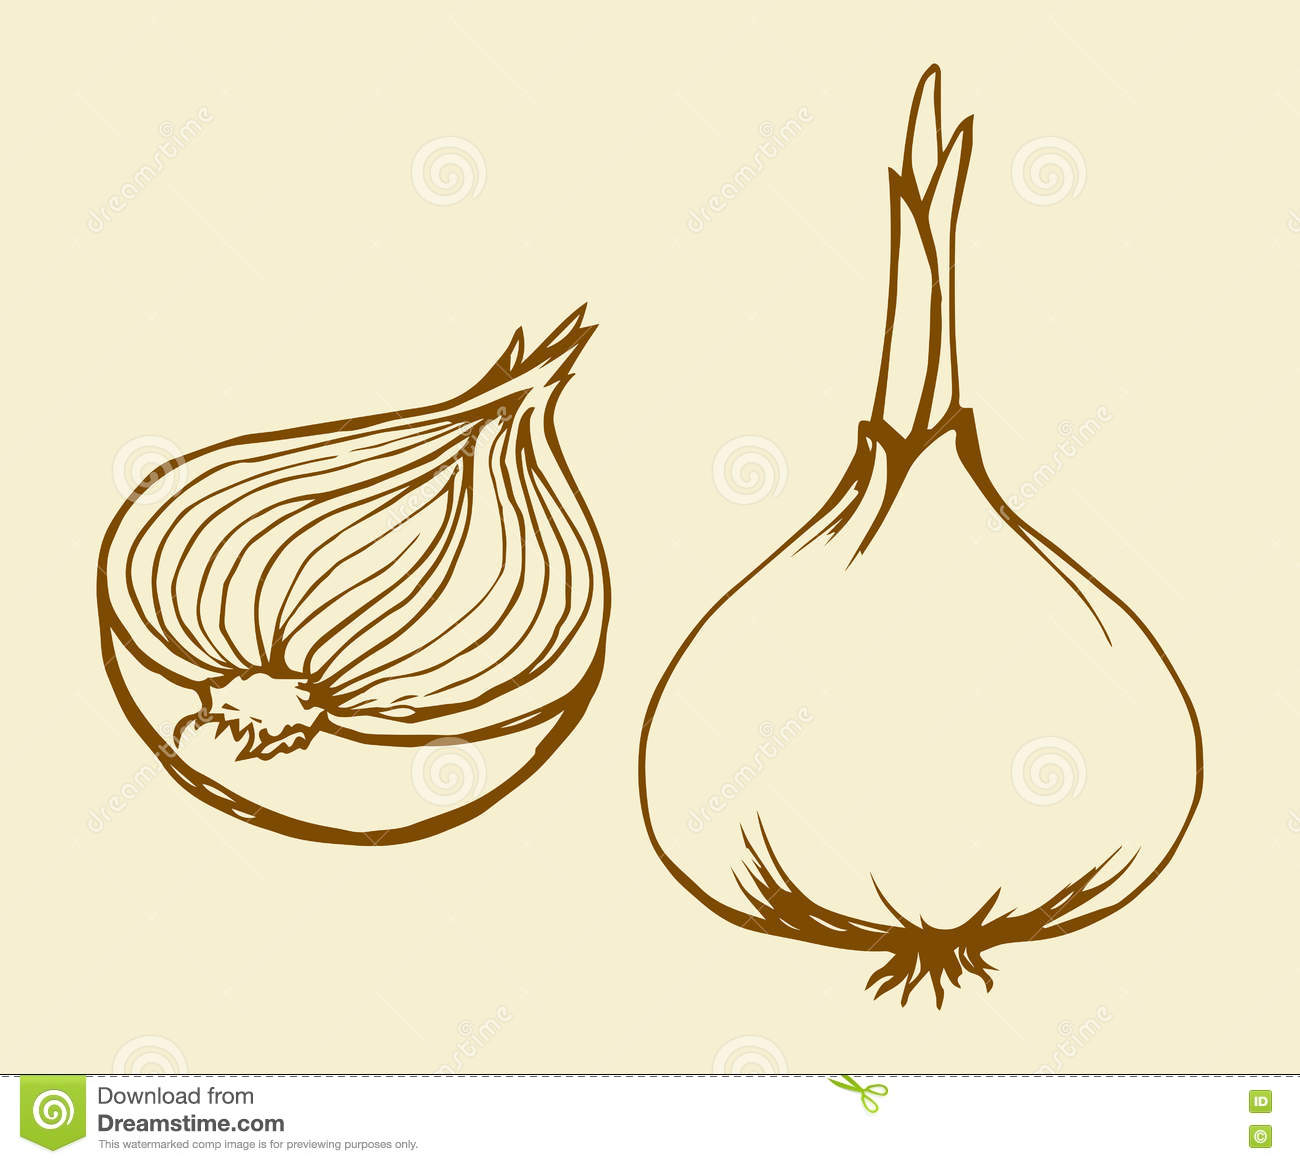 Onion Outline Related Keywords & Suggestions - Onion Outline Long Tail ...